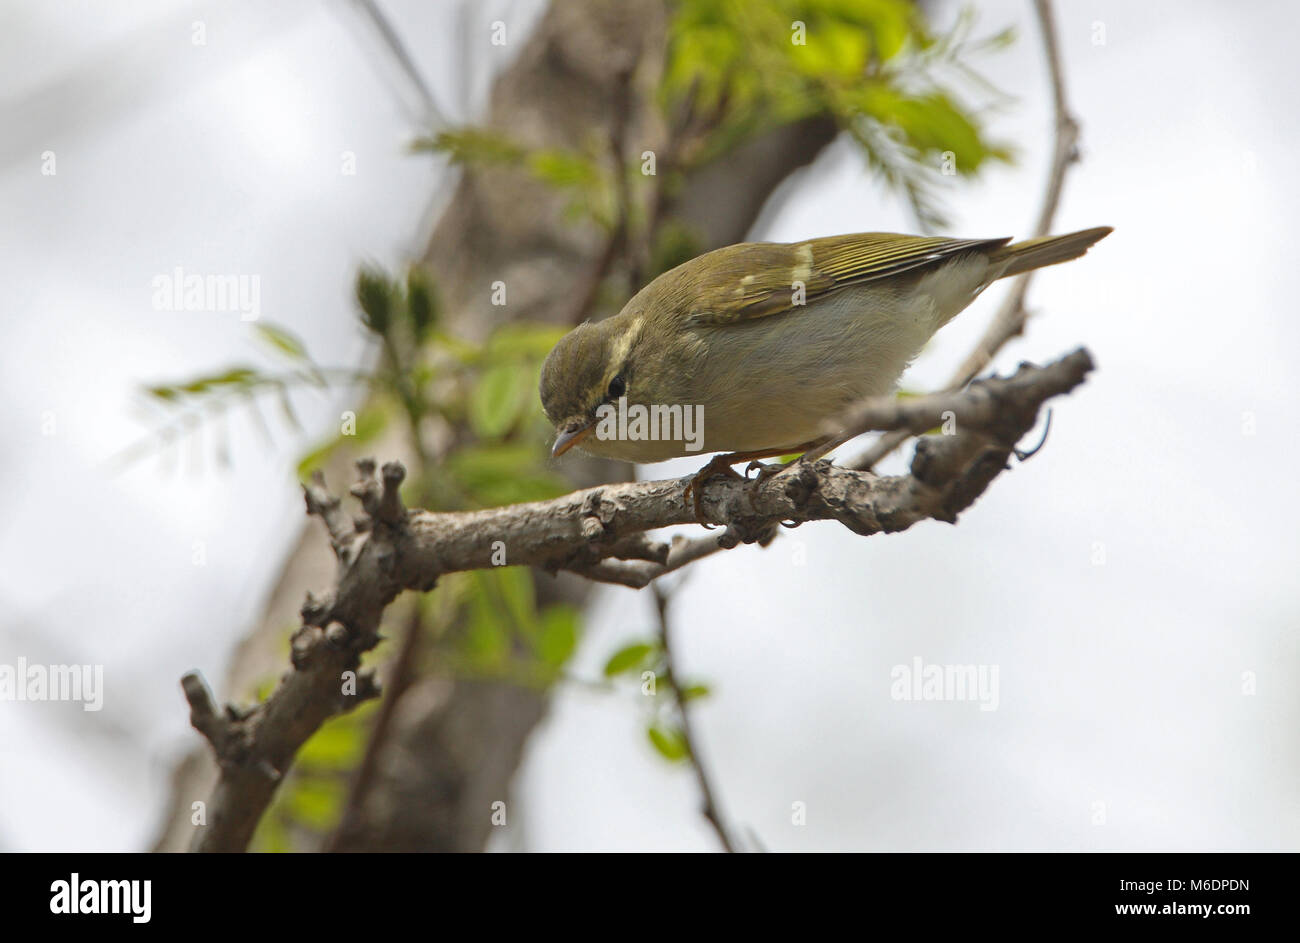 Two-barred Greenish Warbler (Phylloscopus plumbeitarsus) adult on dead branch  Hebei, China            May Stock Photo